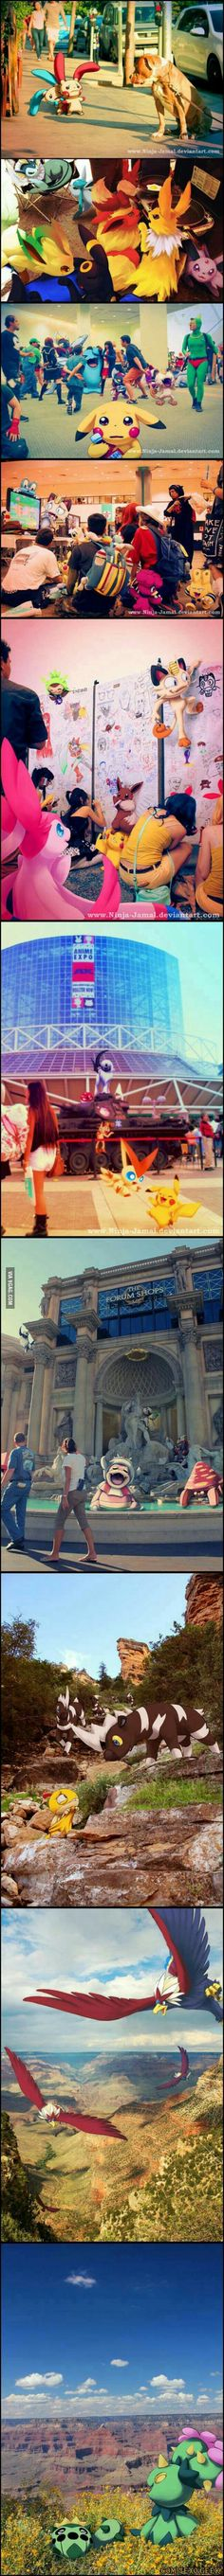 Pokemons: If only they were real